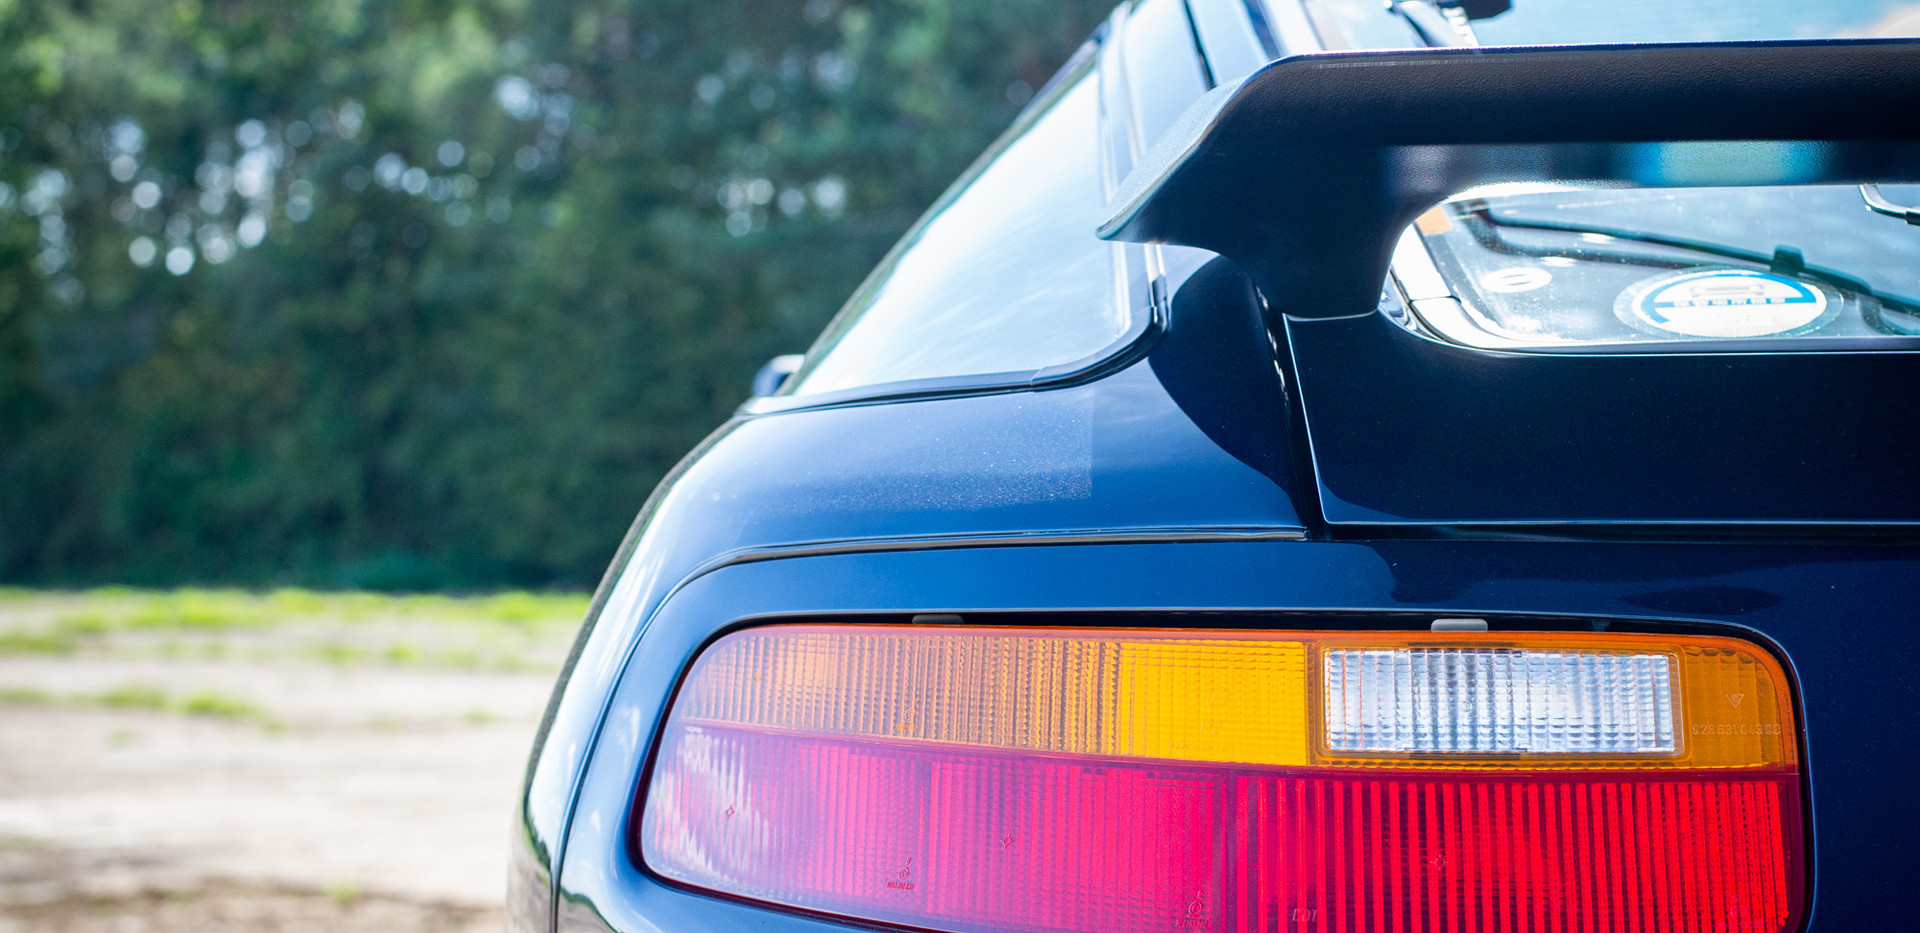 Porsche_928_ForSale Uk London-19.jpg